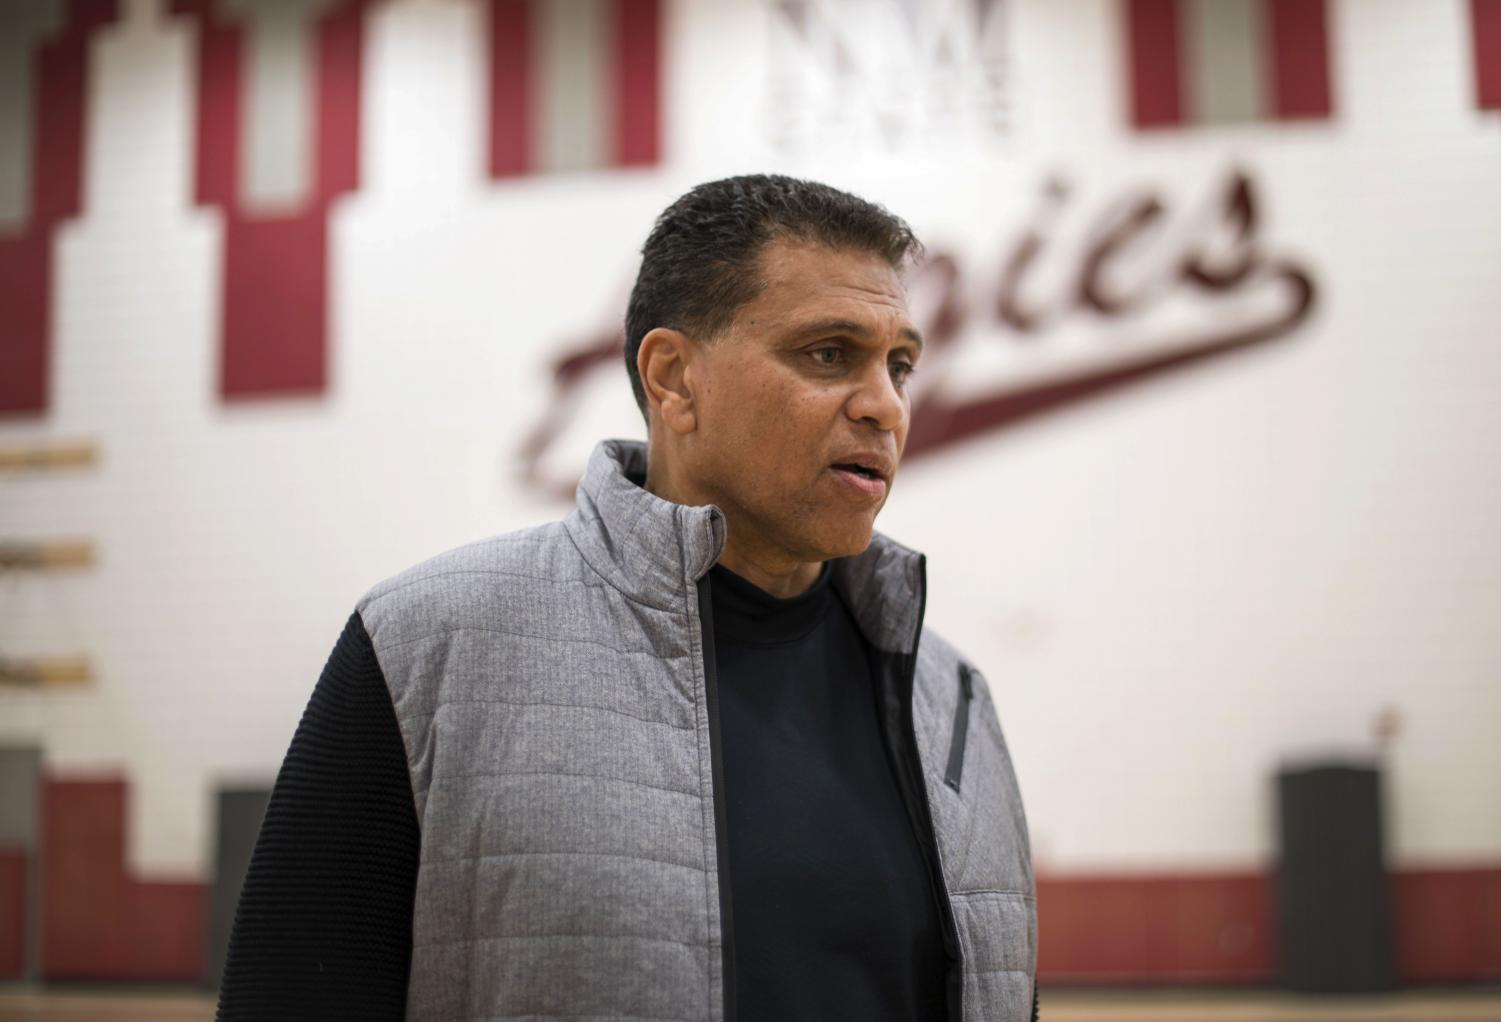 Reggie Theus returns for the first time since 2007 as the Aggies are set to host Chicago State Saturday afternoon at 3 p.m. Theus was 41-23 in his two seasons at NM State.